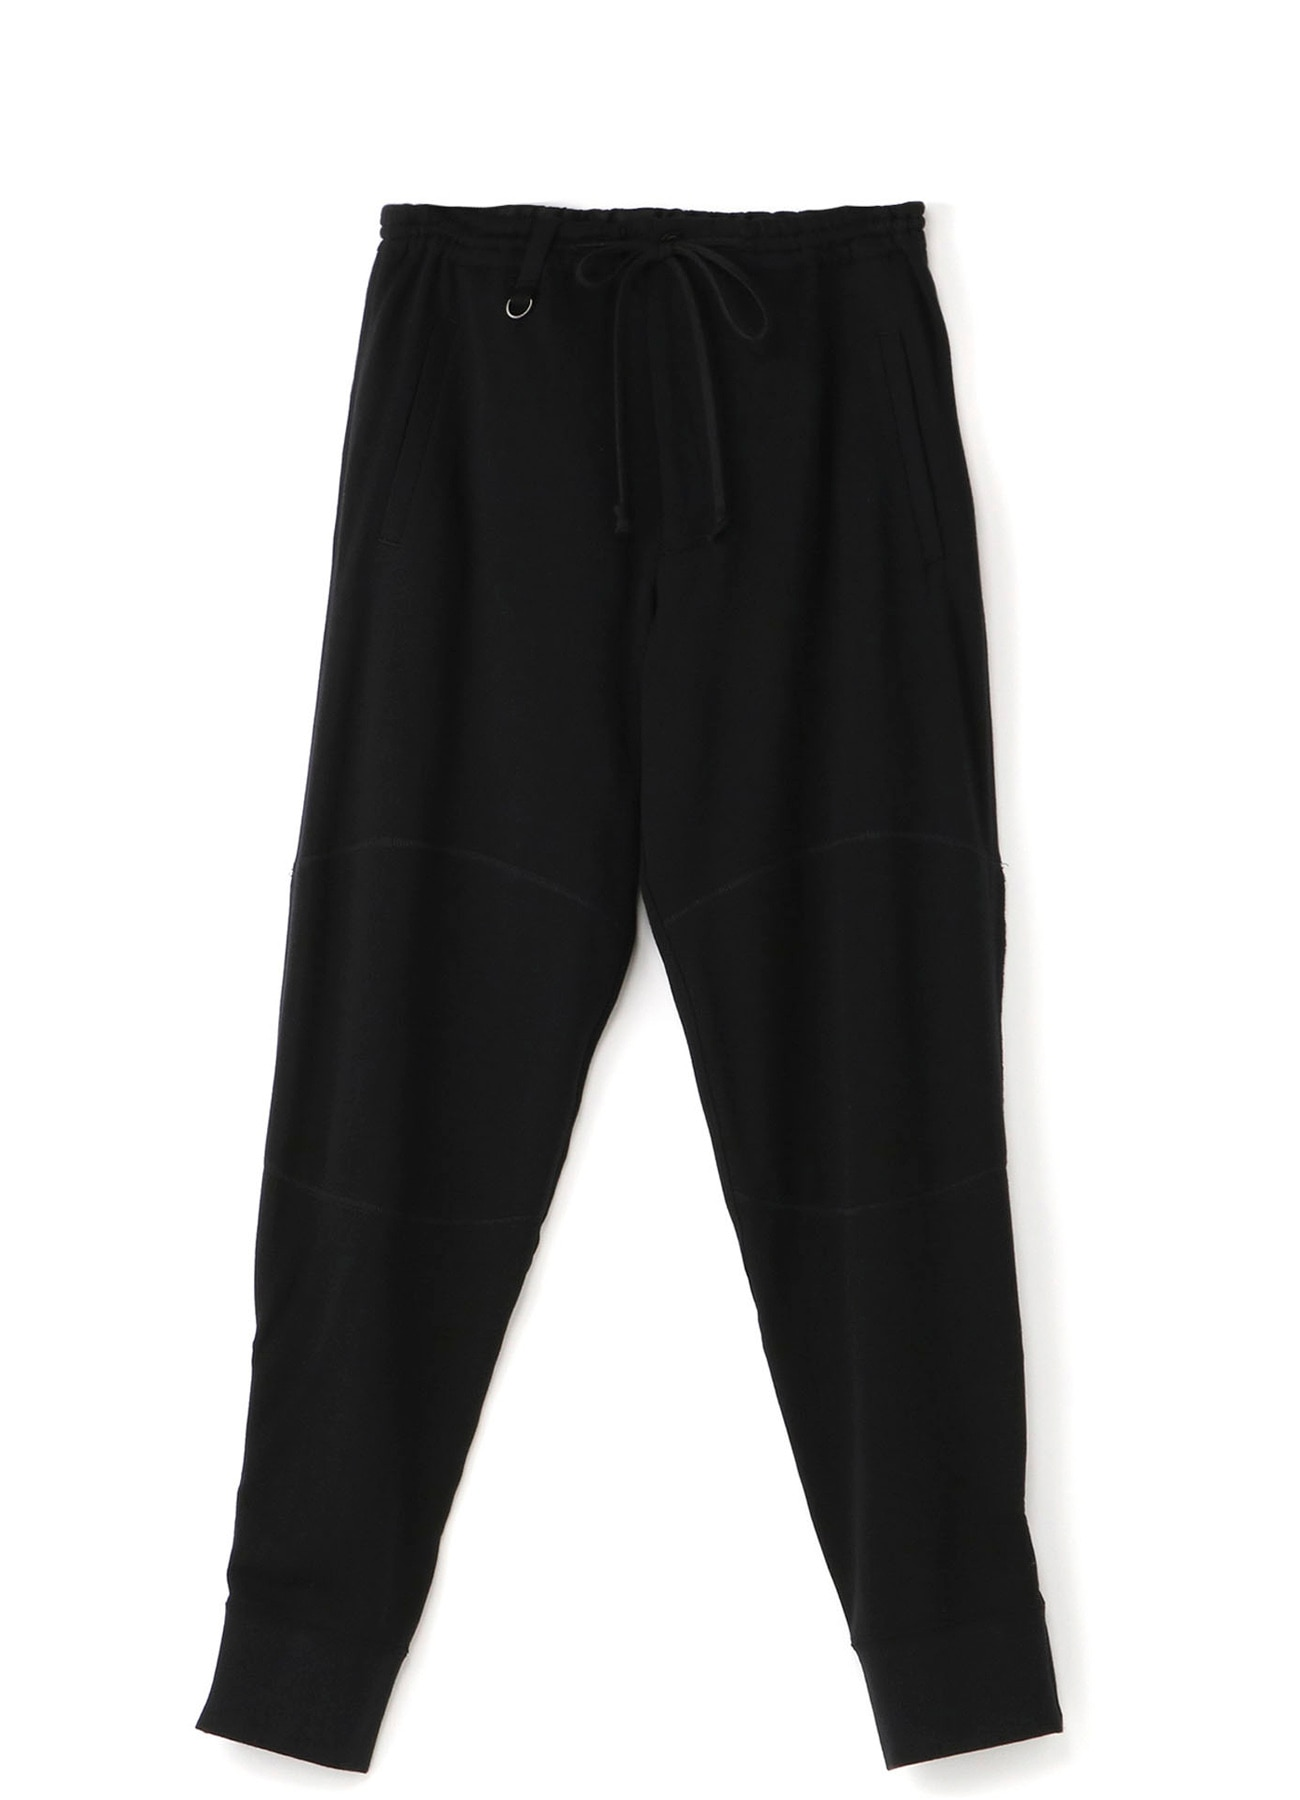 40/20 Fleecy stitch Hem zip pants